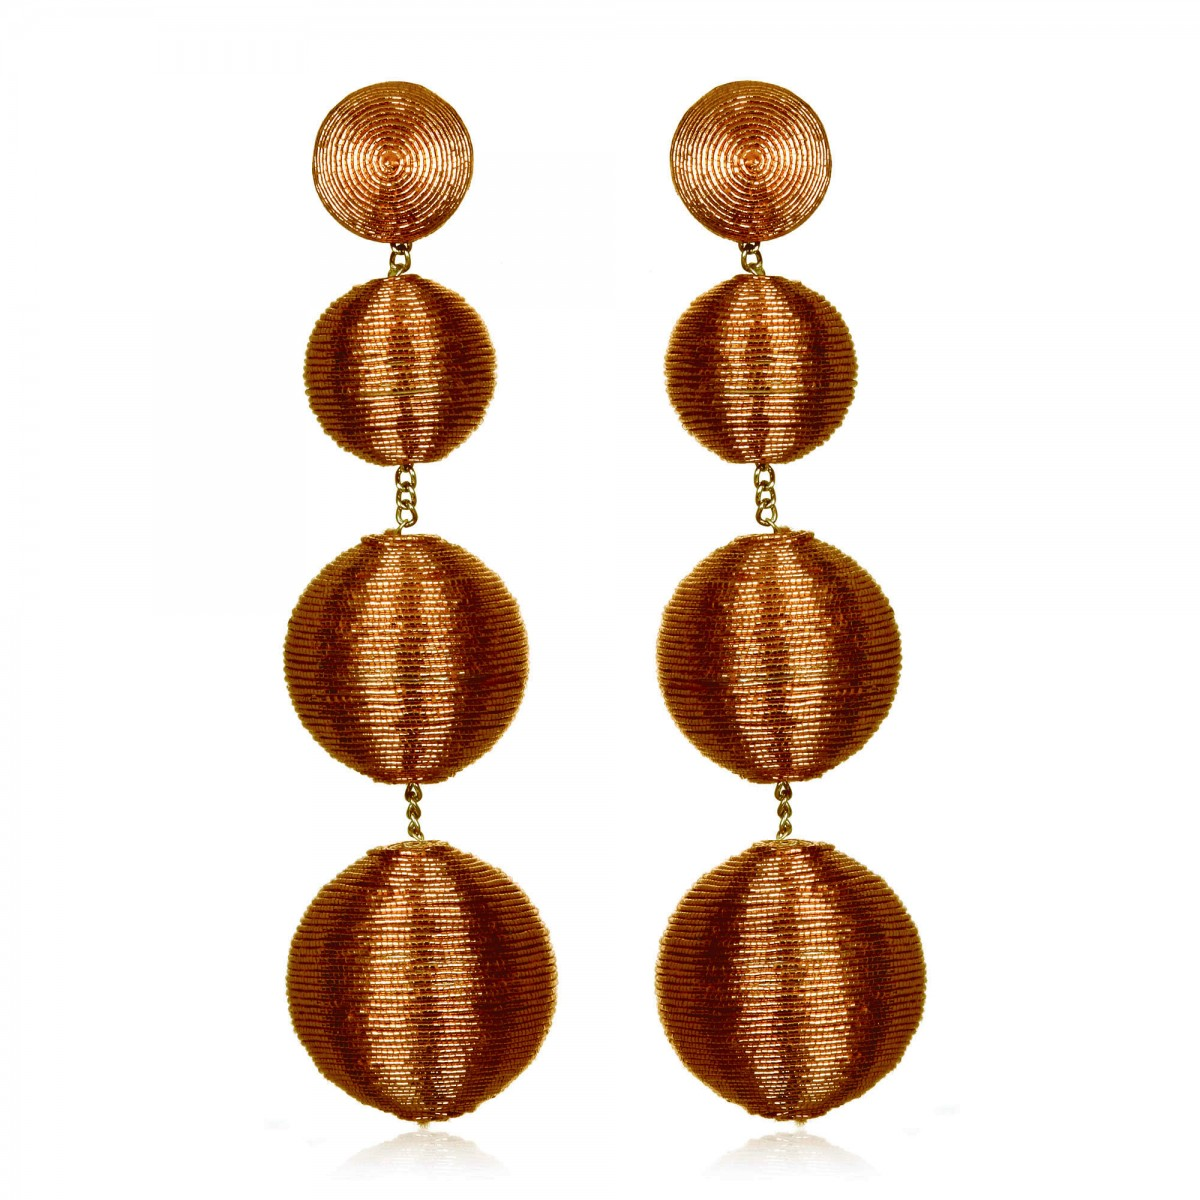 Bronze Gumball Earrings by SUZANNA DAI